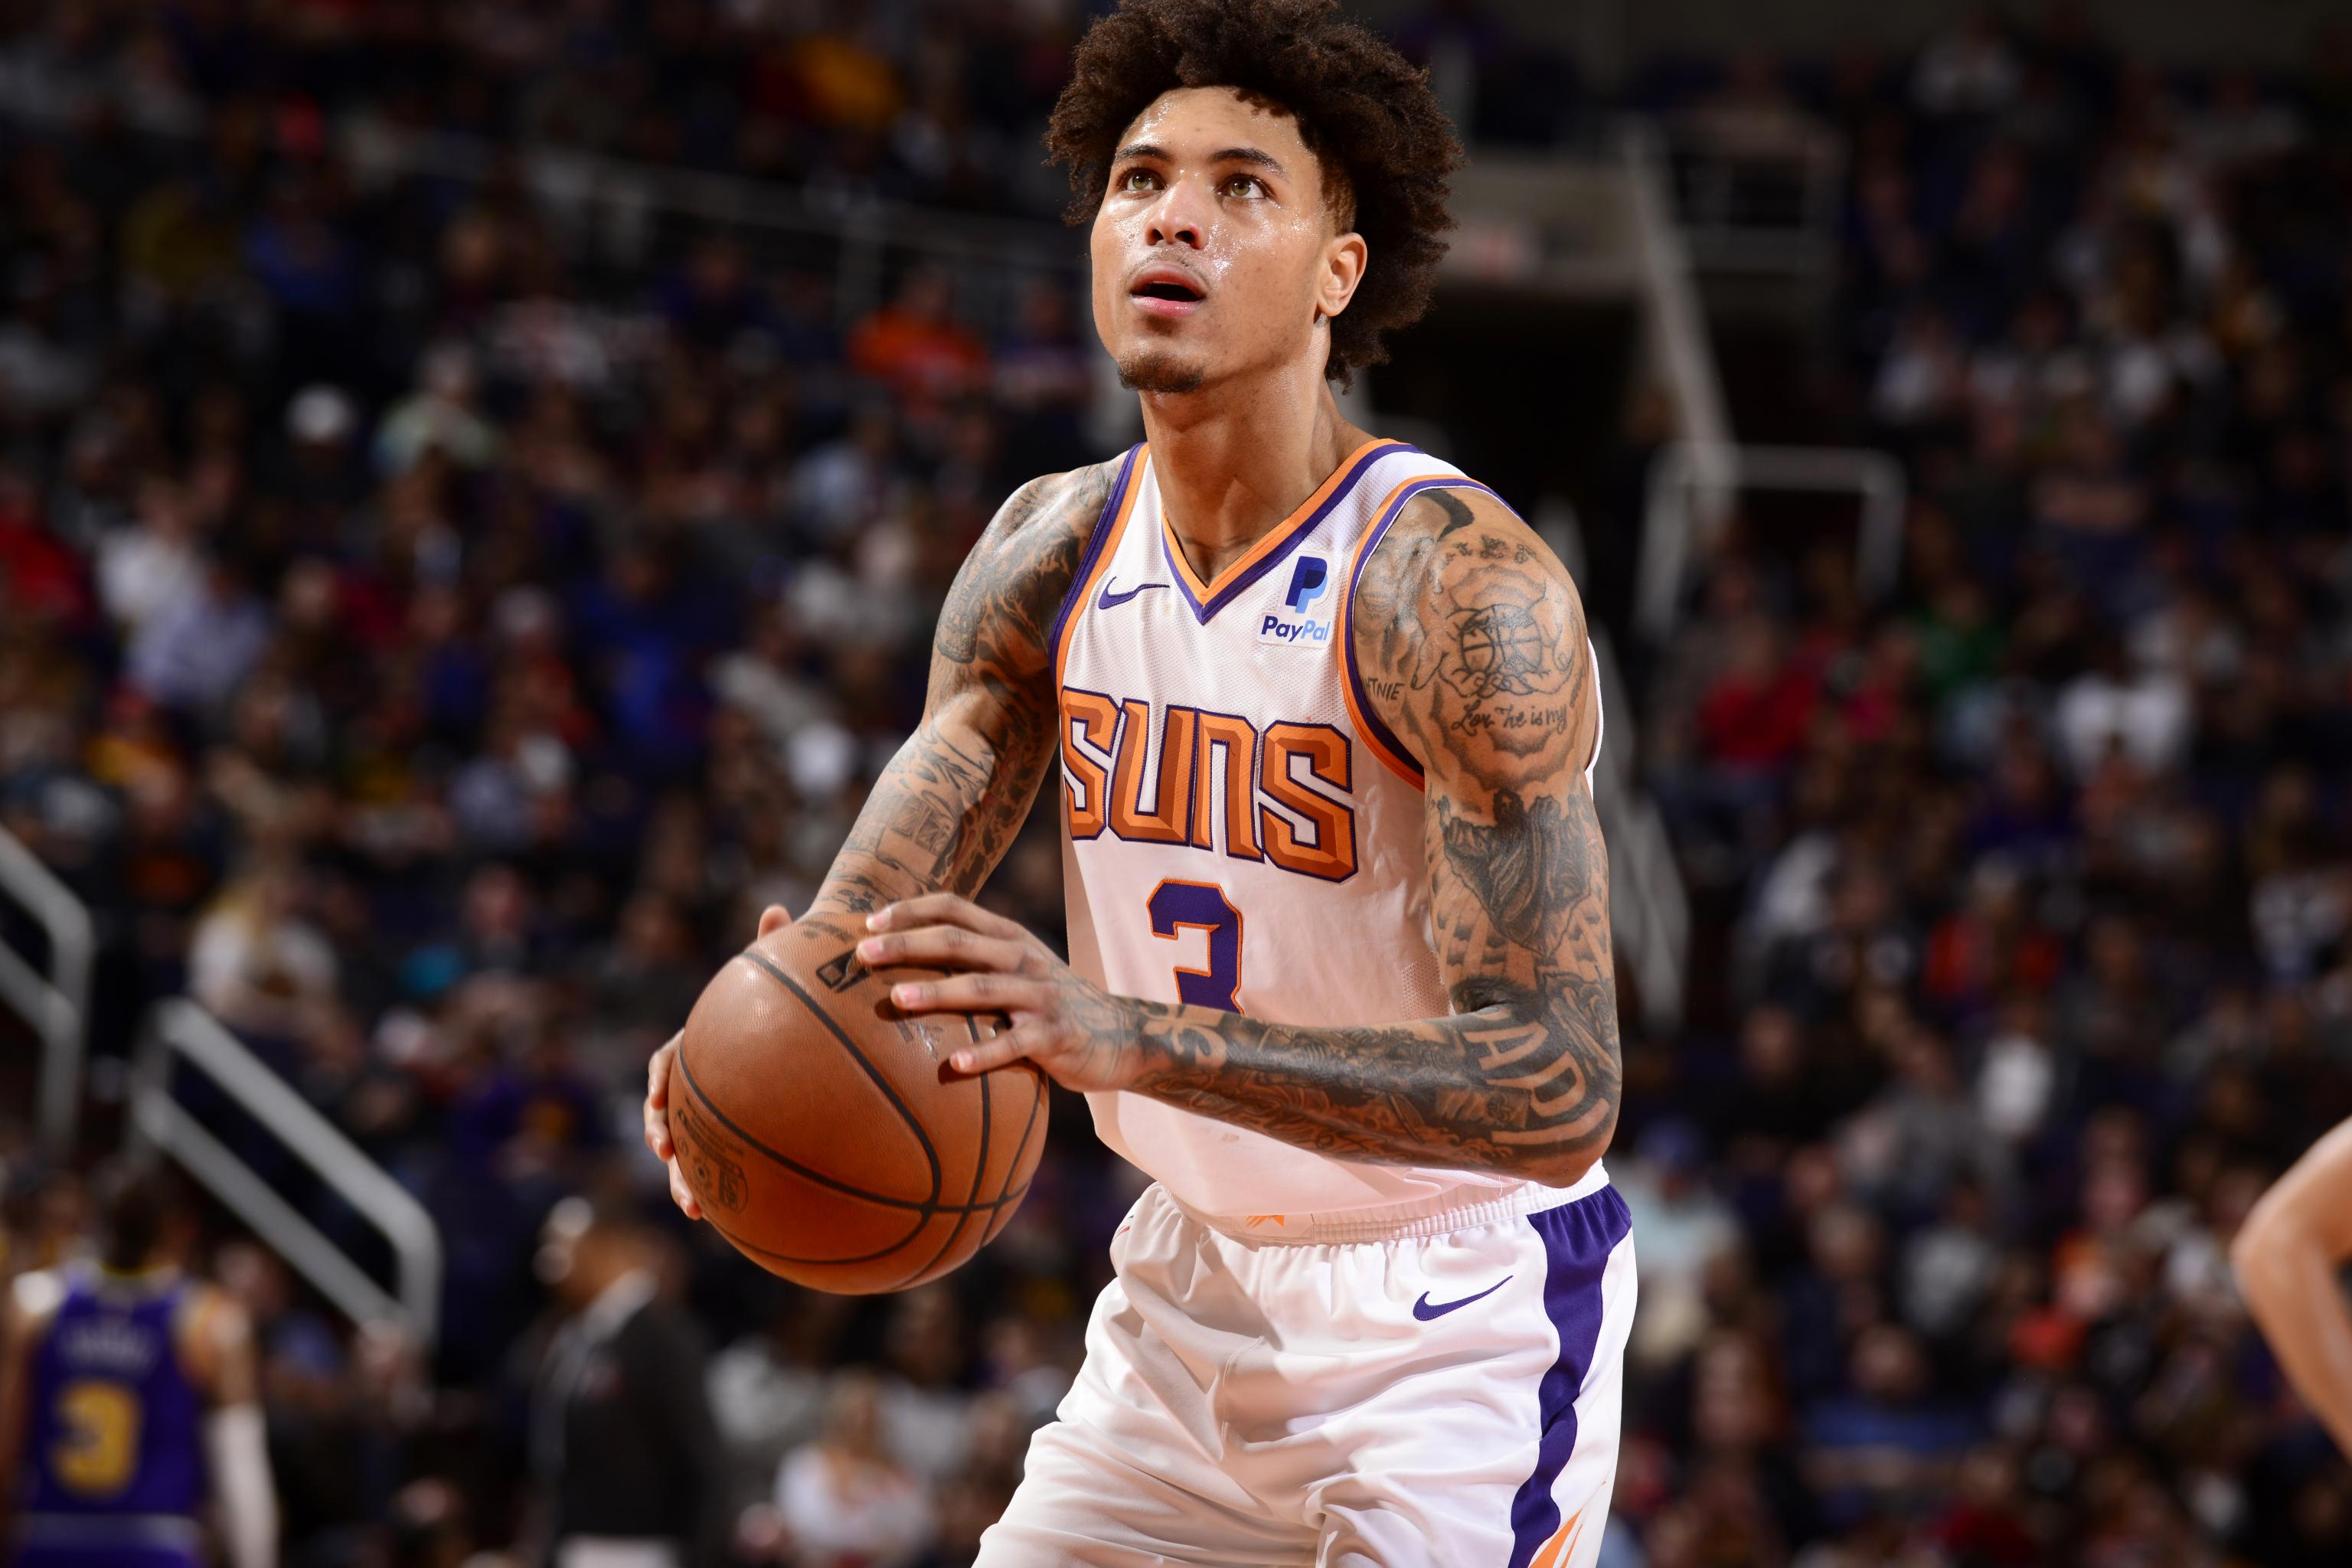 Report: Suns' Kelly Oubre Jr. Will Undergo Season-Ending Surgery ...